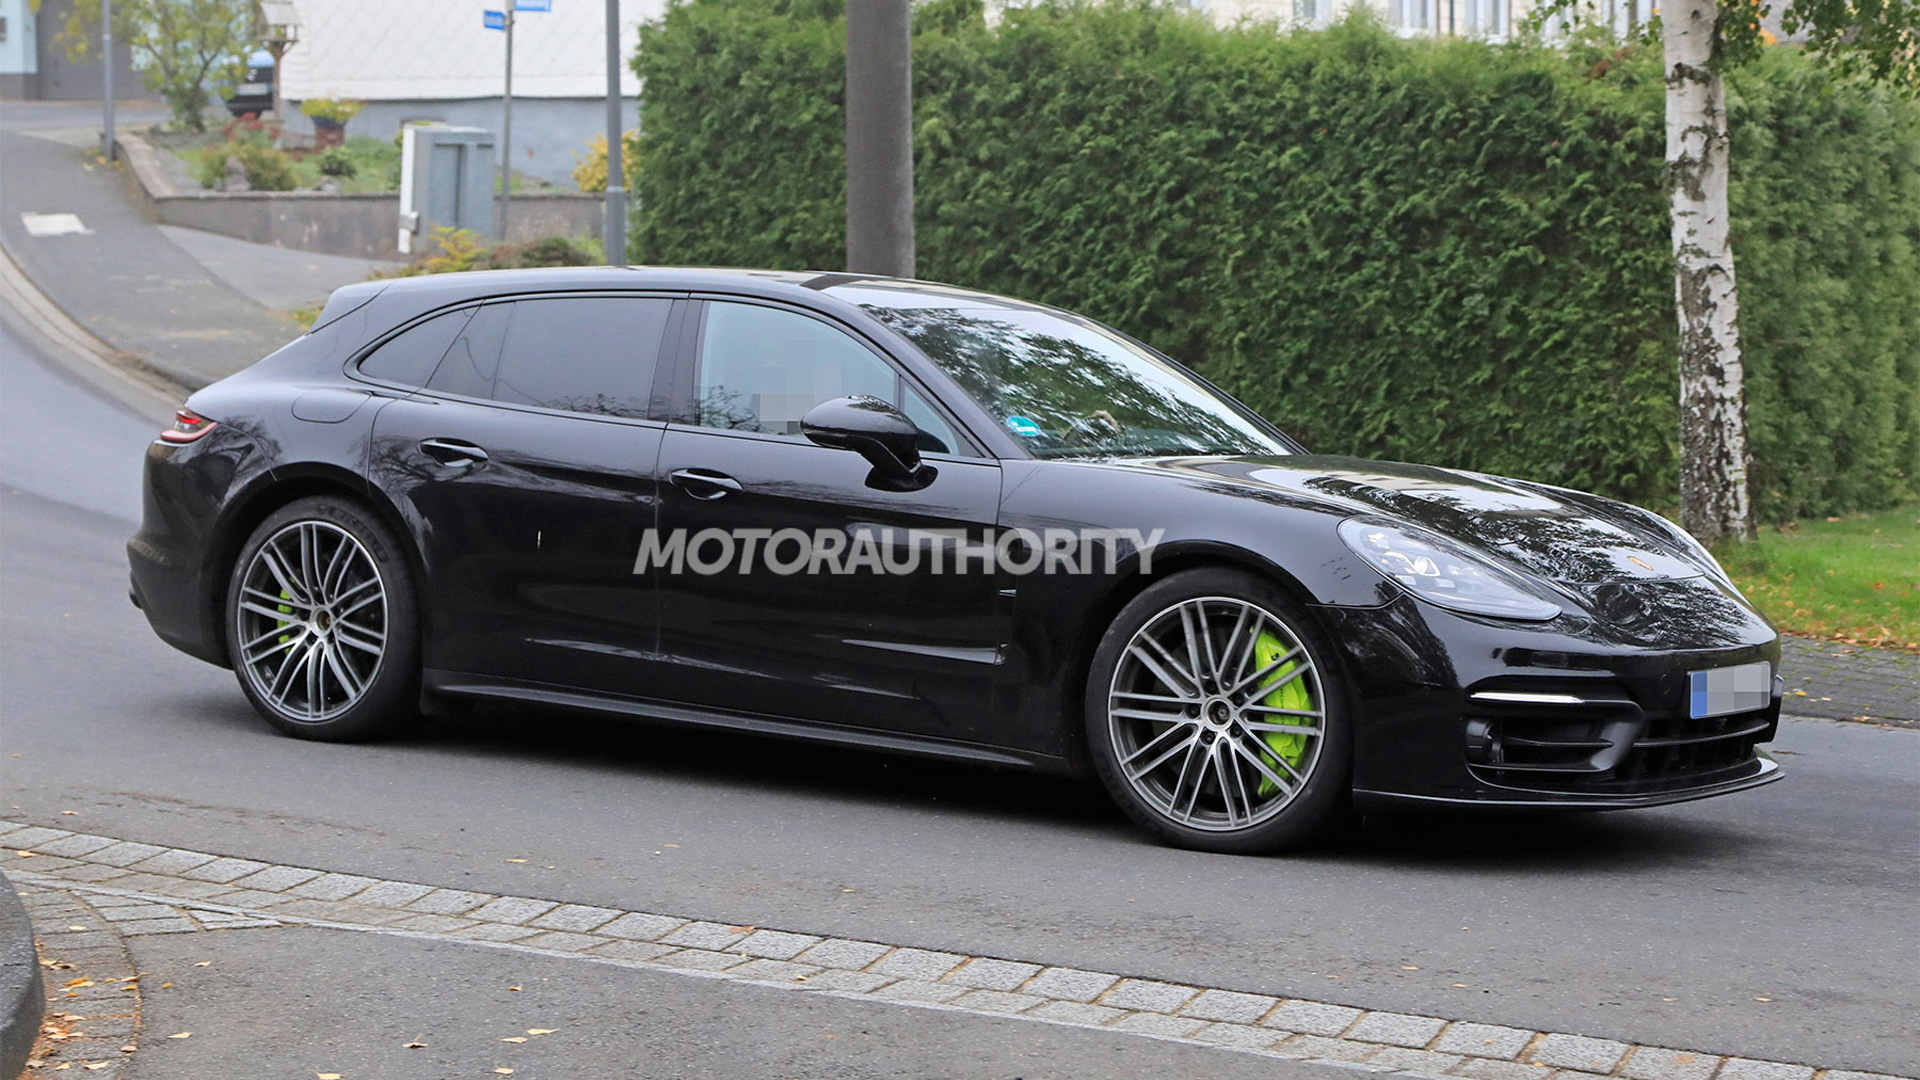 Electric Porsche Taycan Turbo hit with disappointing 201-mile range rating